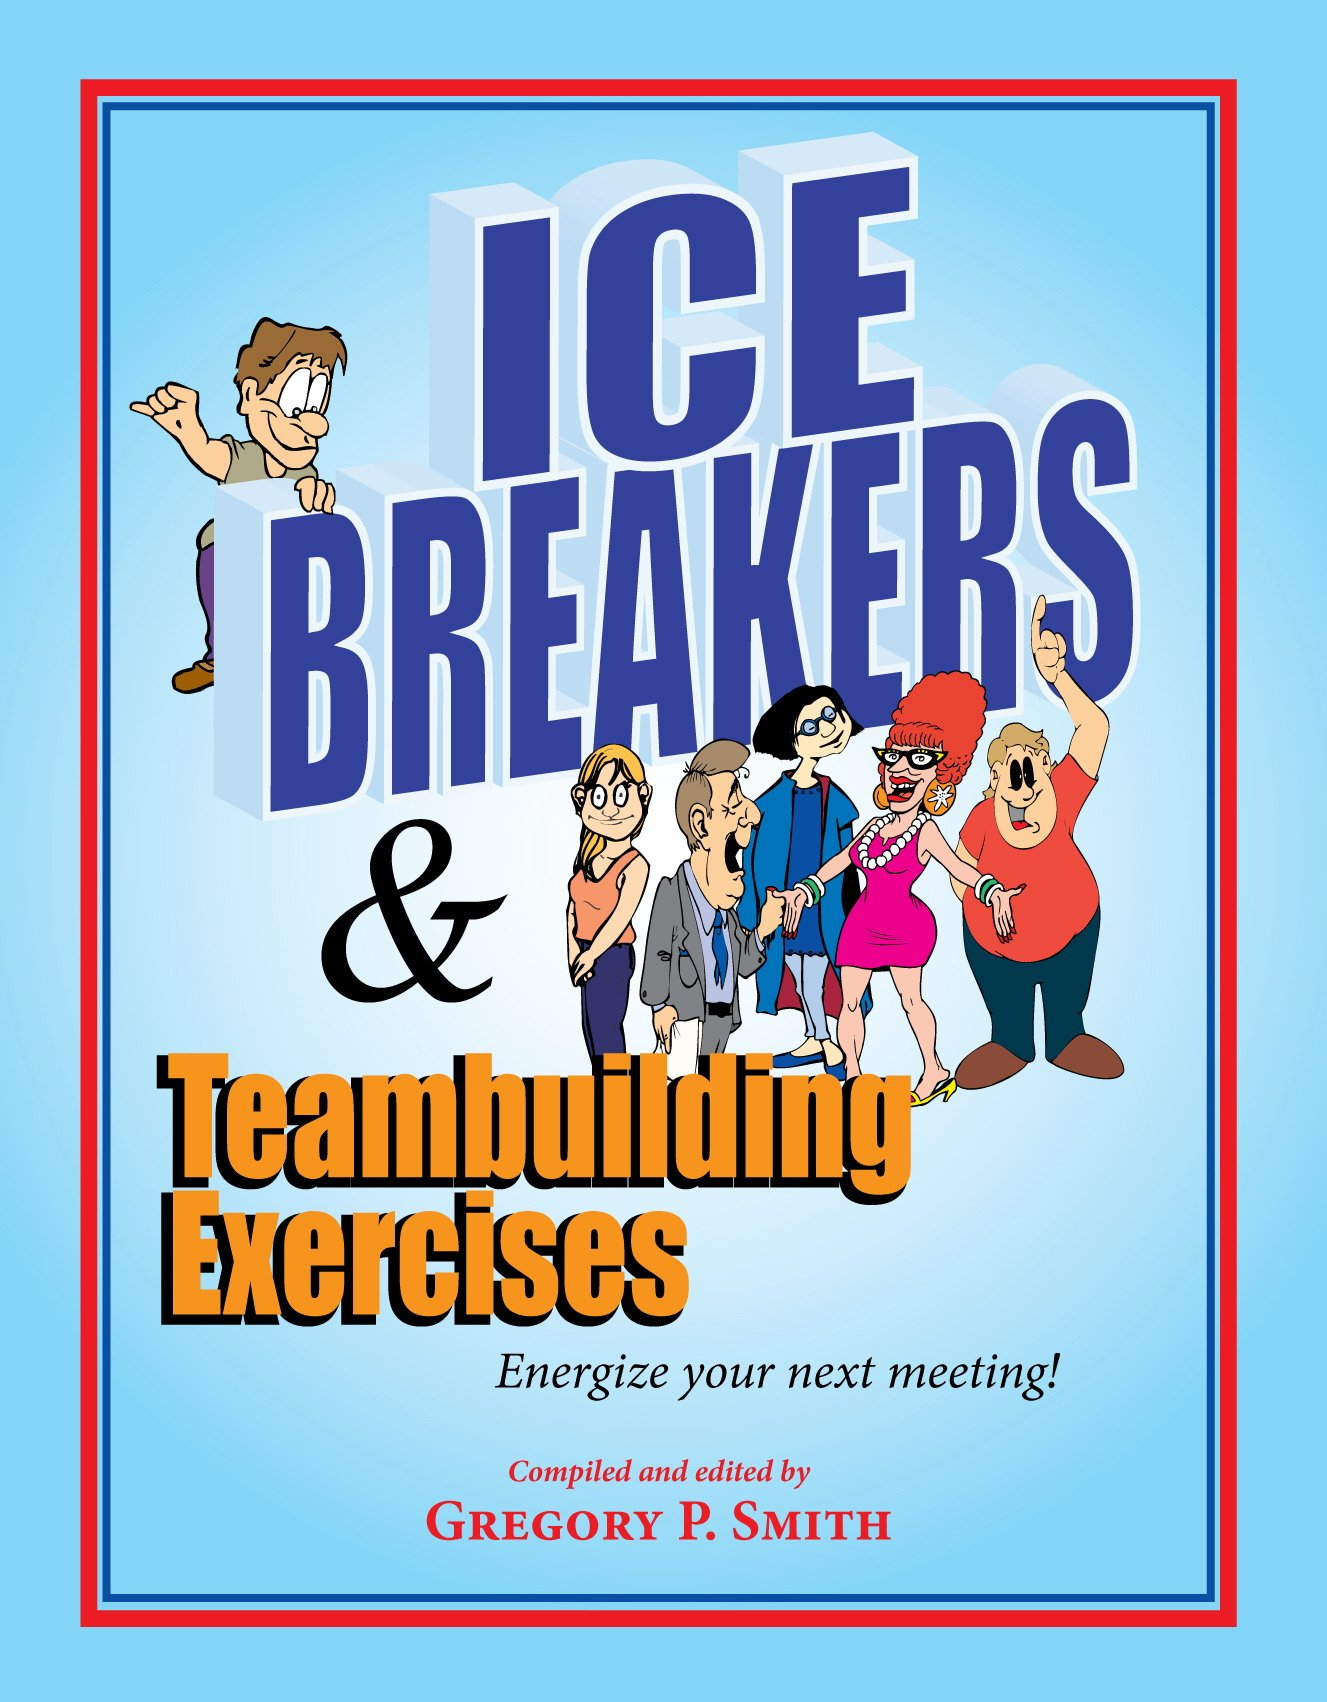 Free Team Building Exercises Ice Breakers And Teambuilding Games